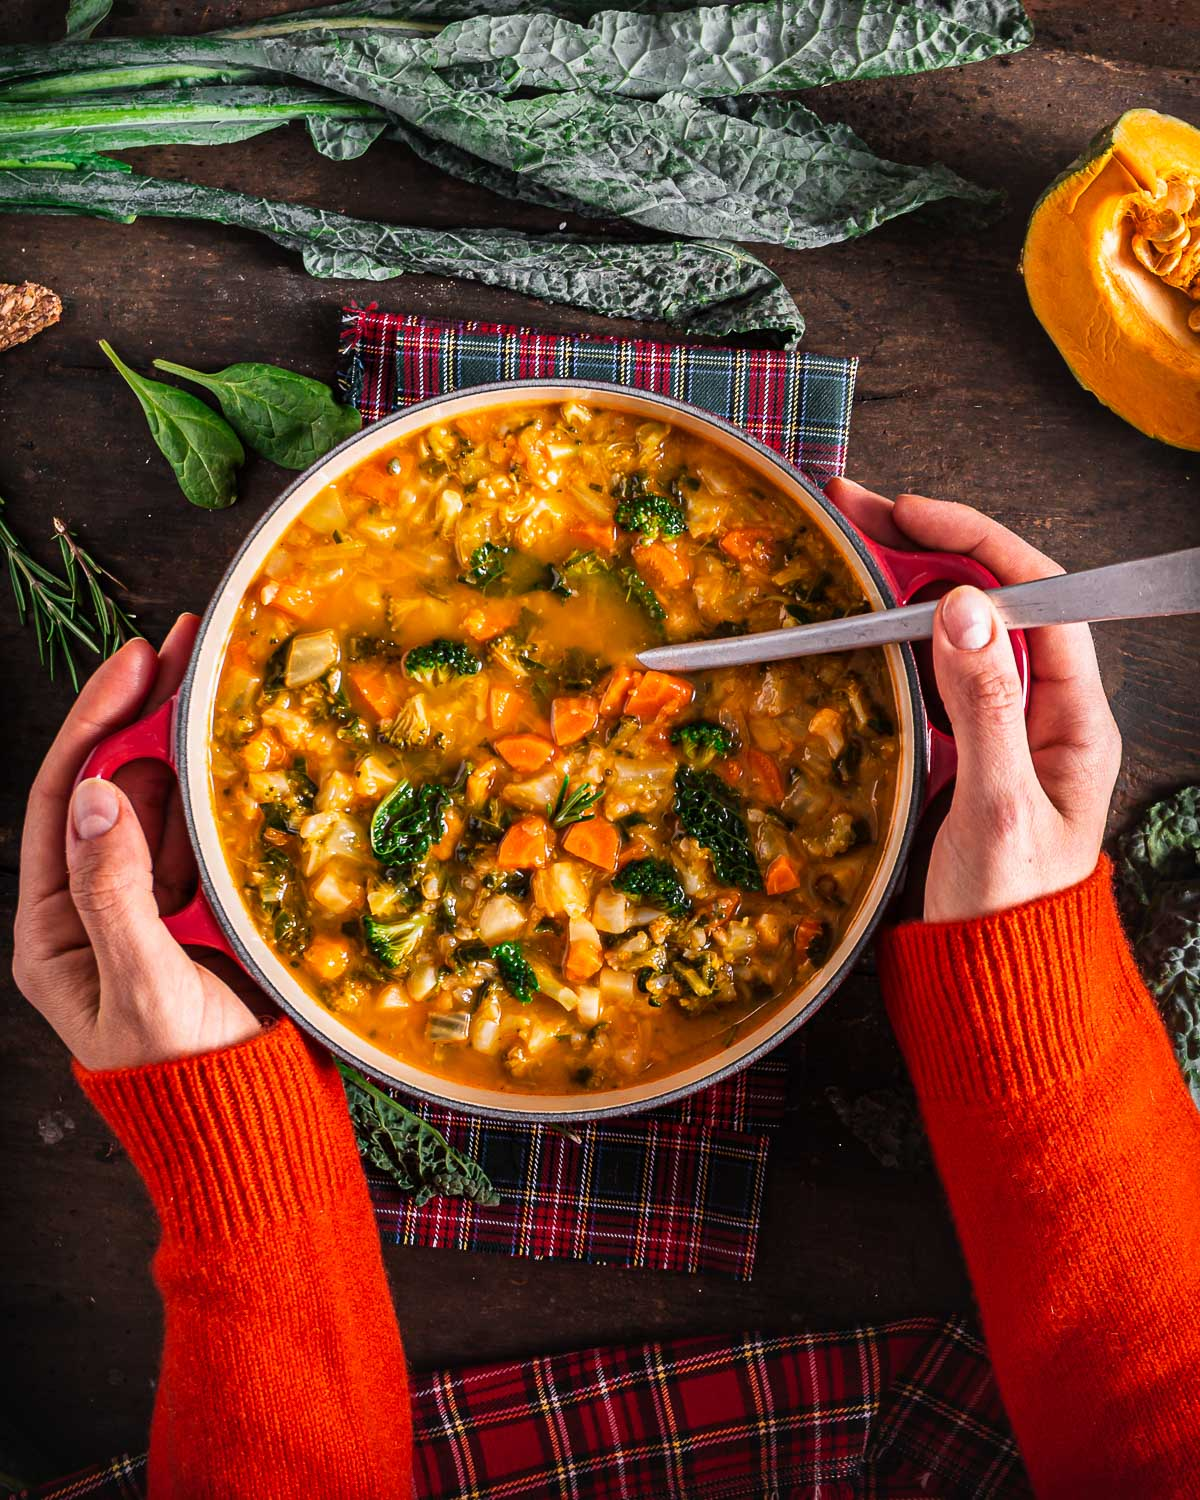 Italian healthy fall minestrone soup recipe hearty autumn vegetable soup ricetta minestrone di verdure autunnale con zucca cavolo toscano zuppa di verdure